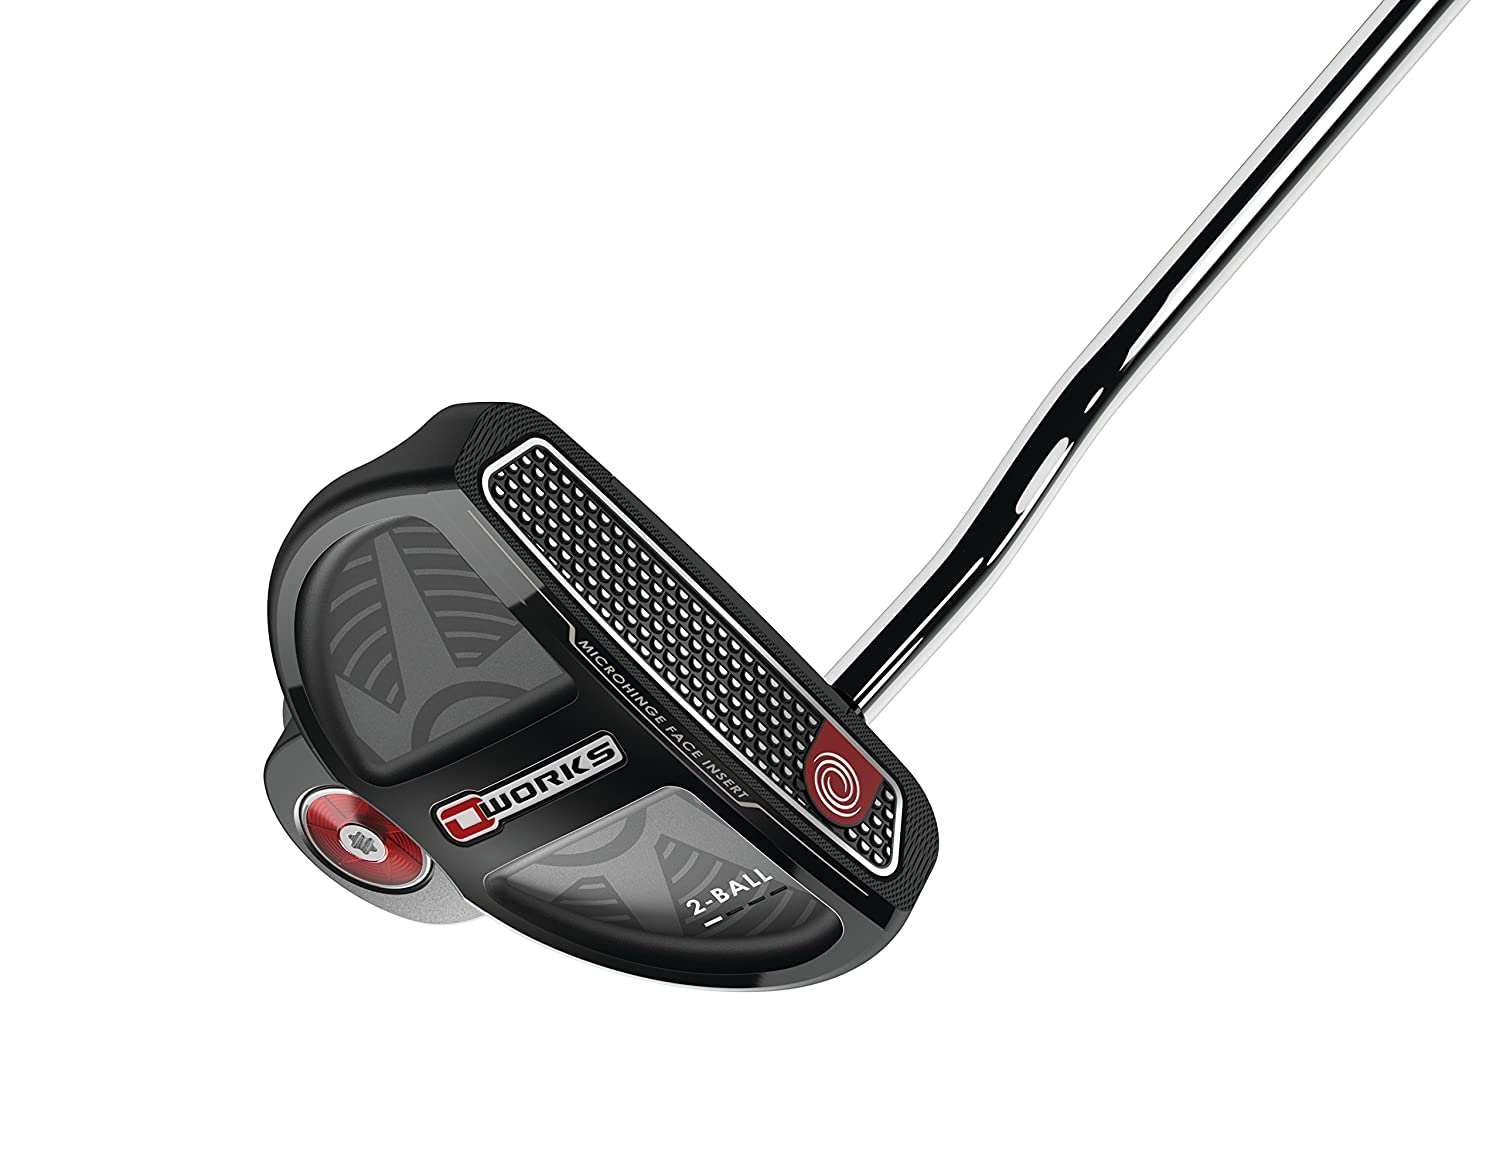 o works 2 ball putter